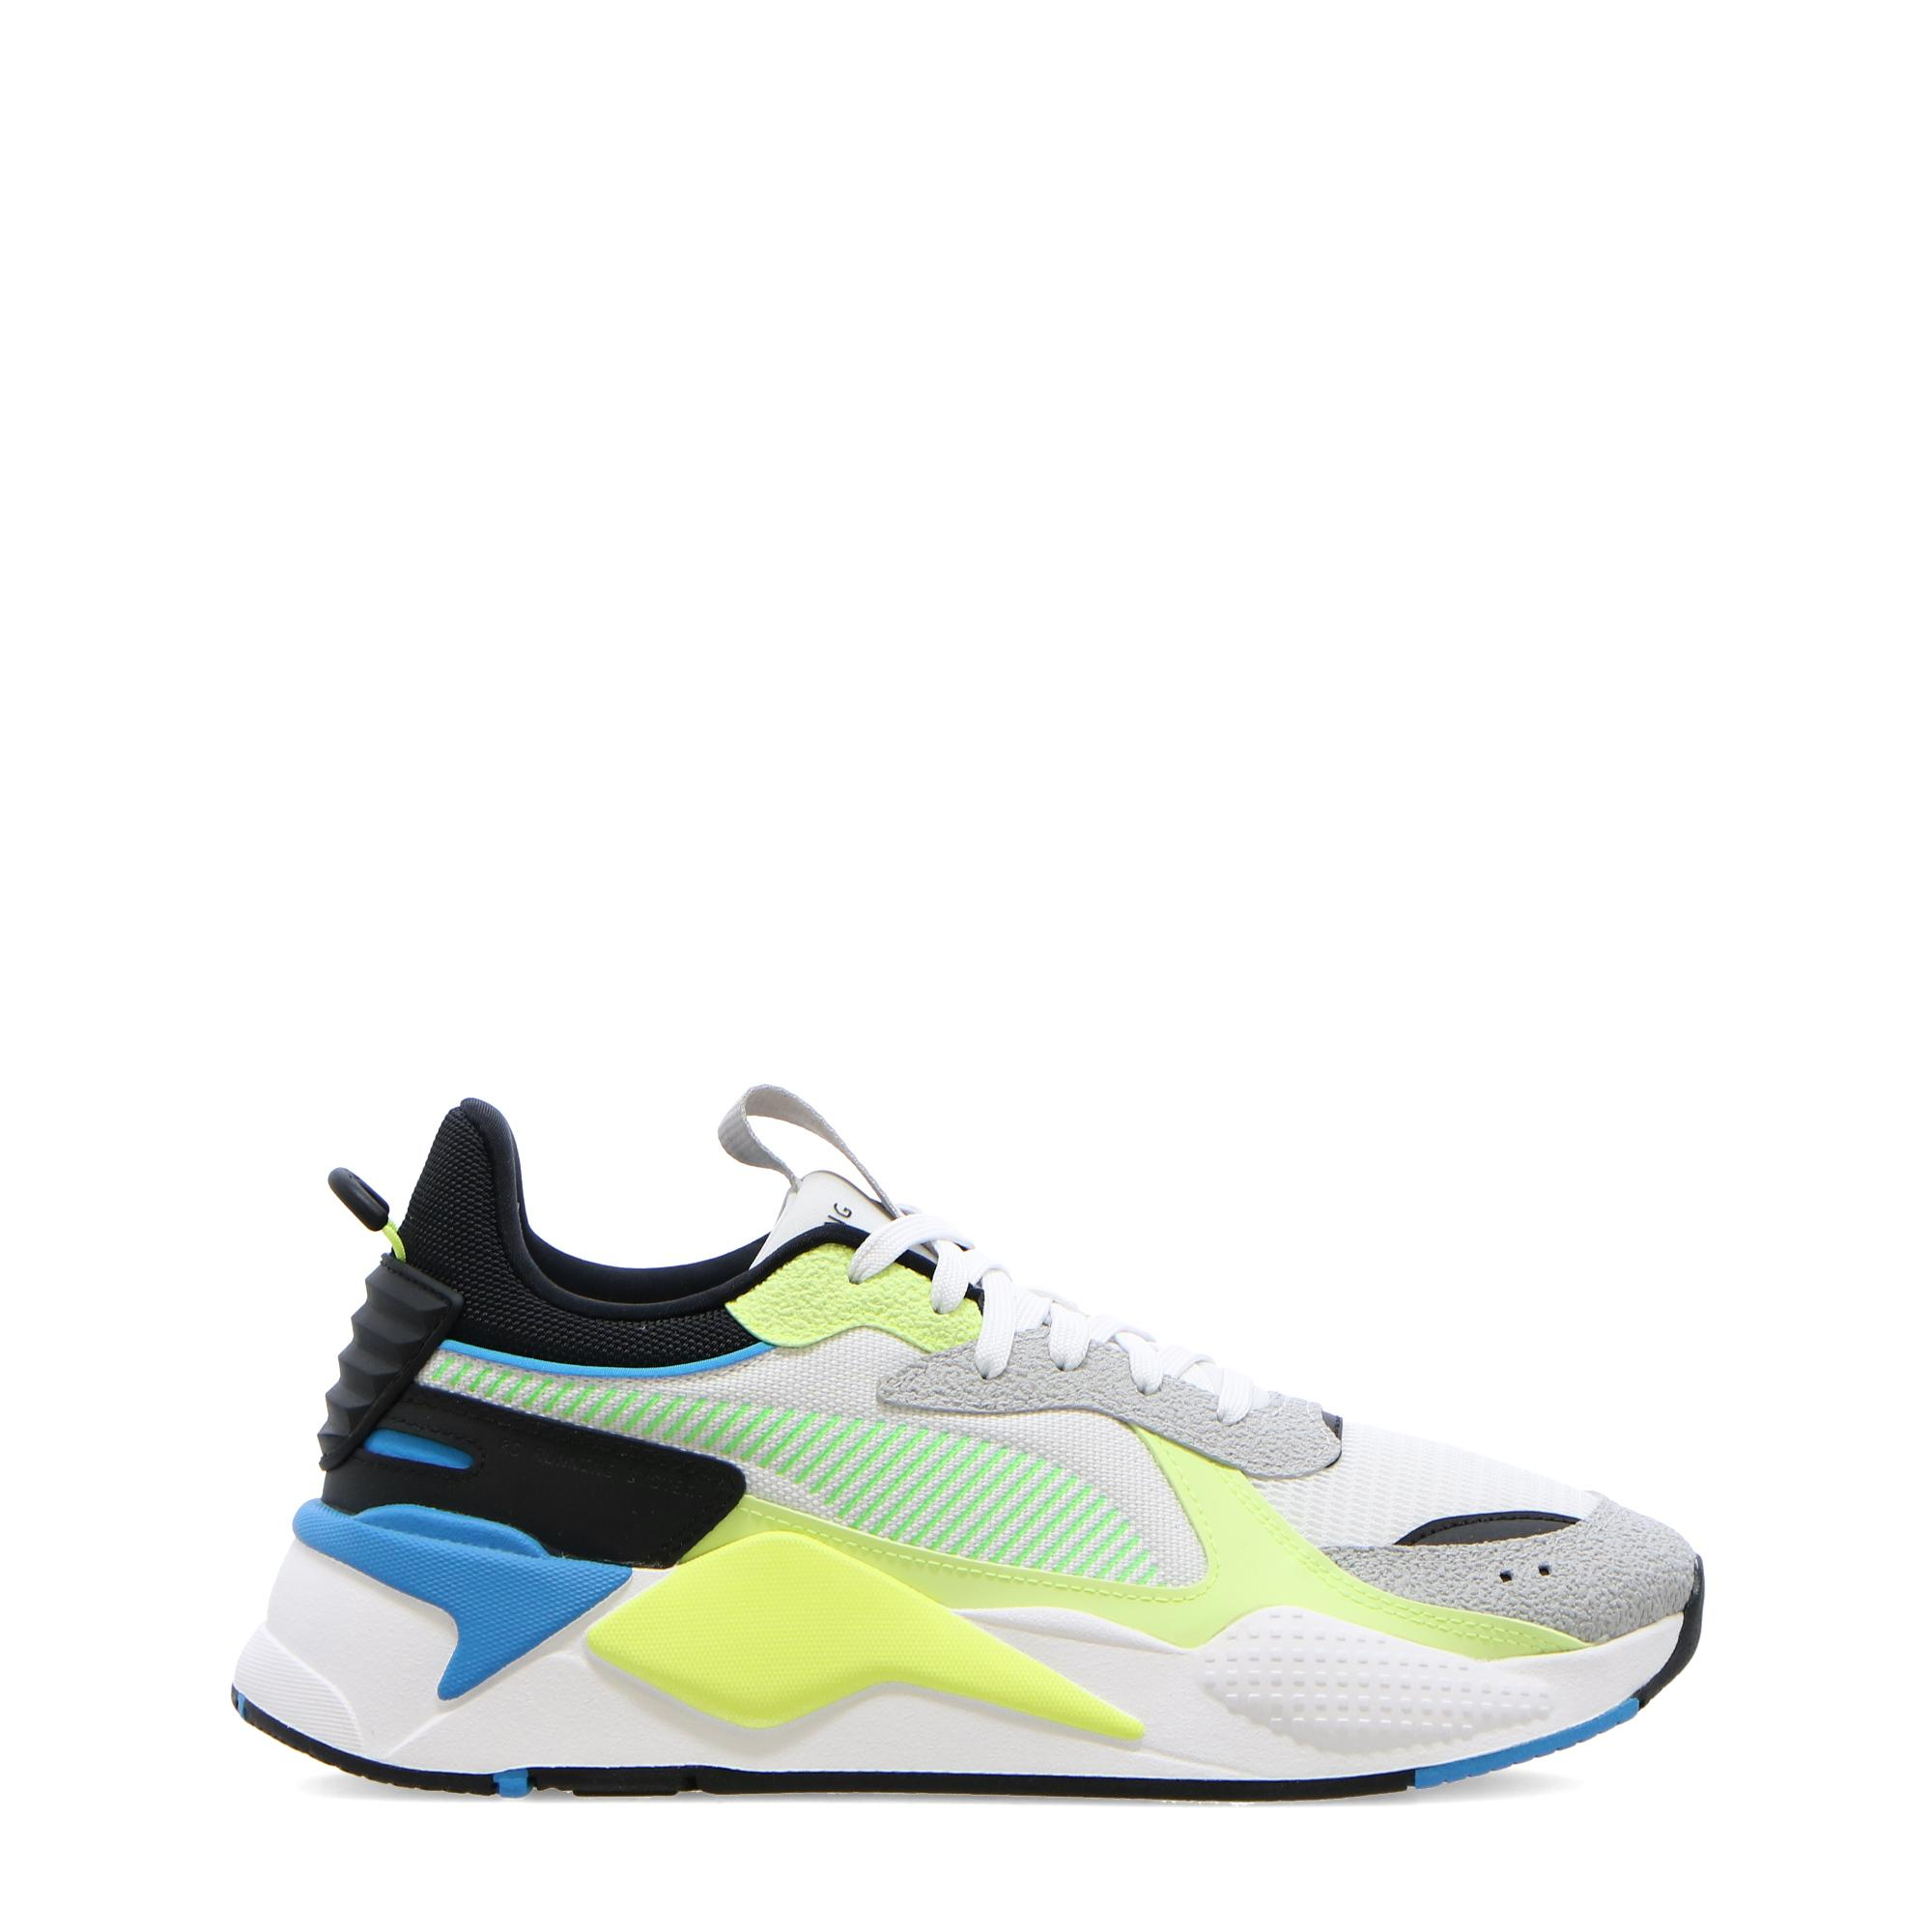 Puma Rs-x Hard Drive White fizzy yellow grey violet